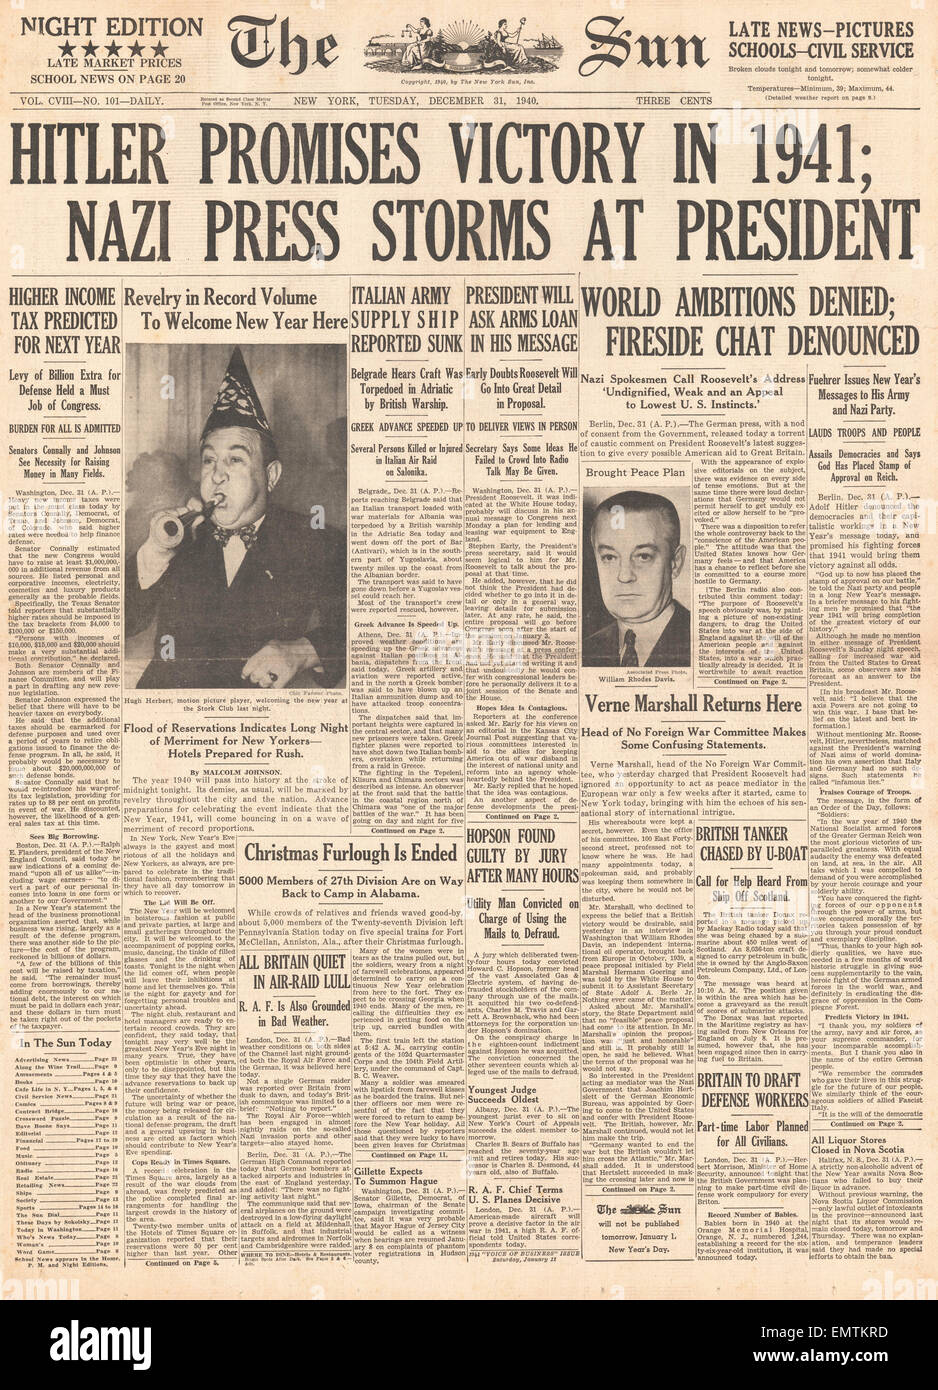 1940 front page The Sun (New York) Hitler promises victory in 1941 German press criticise President Roosevelt - Stock Image